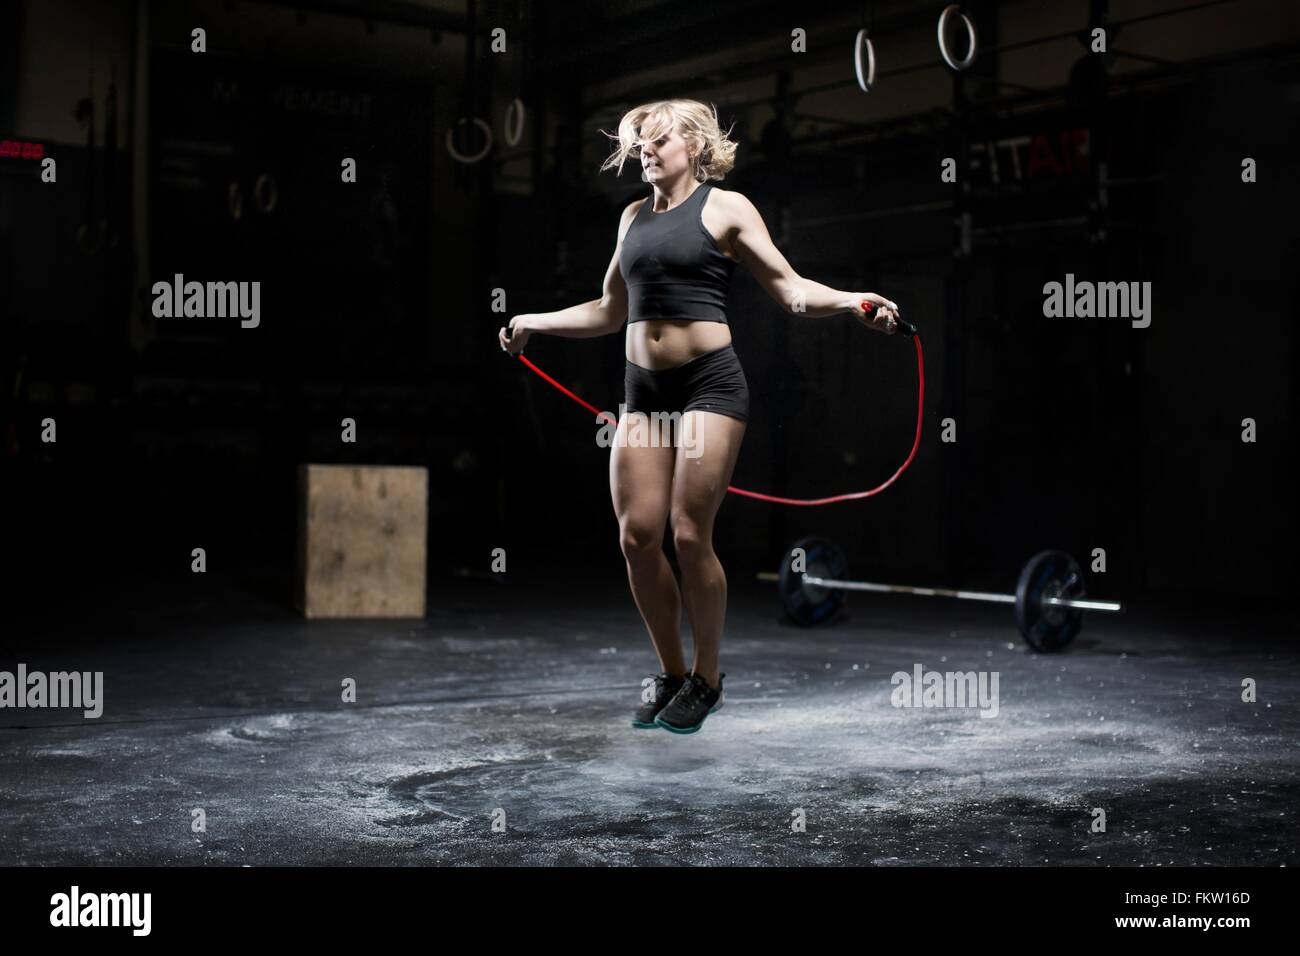 Young woman skipping in dark gym - Stock Image